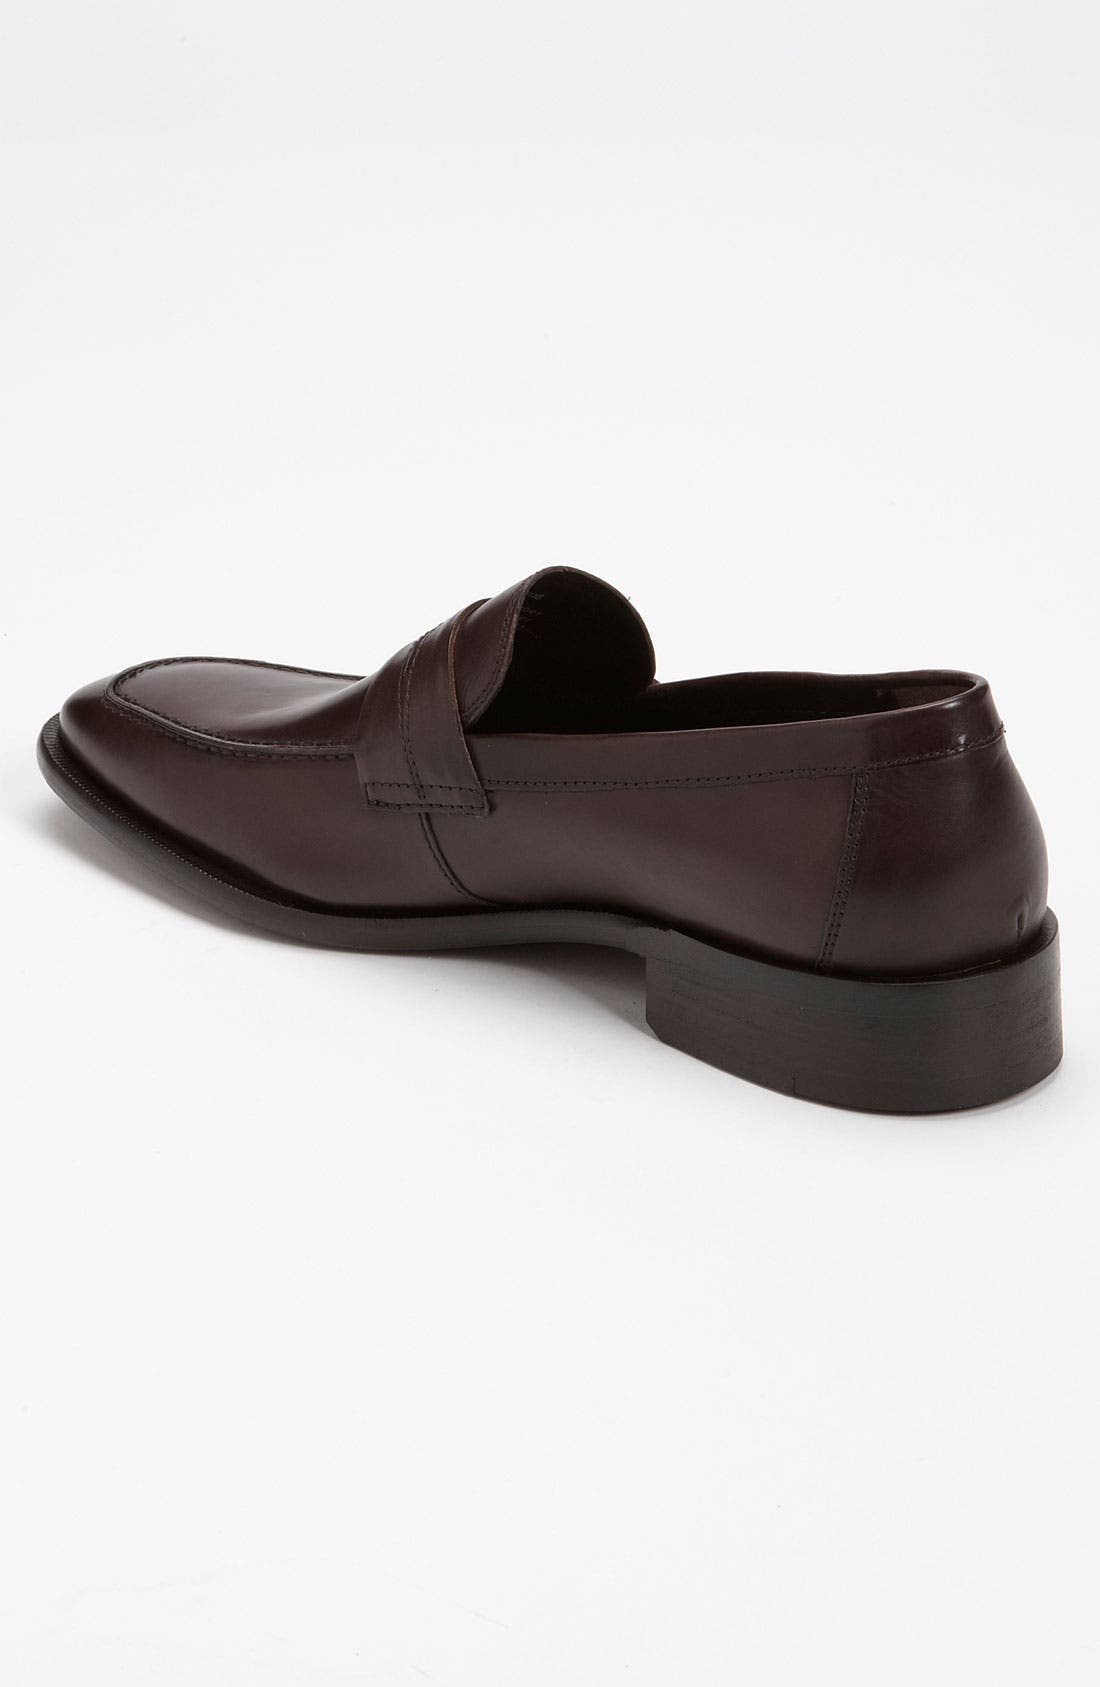 Alternate Image 2  - Donald J Pliner 'Gair' Loafer